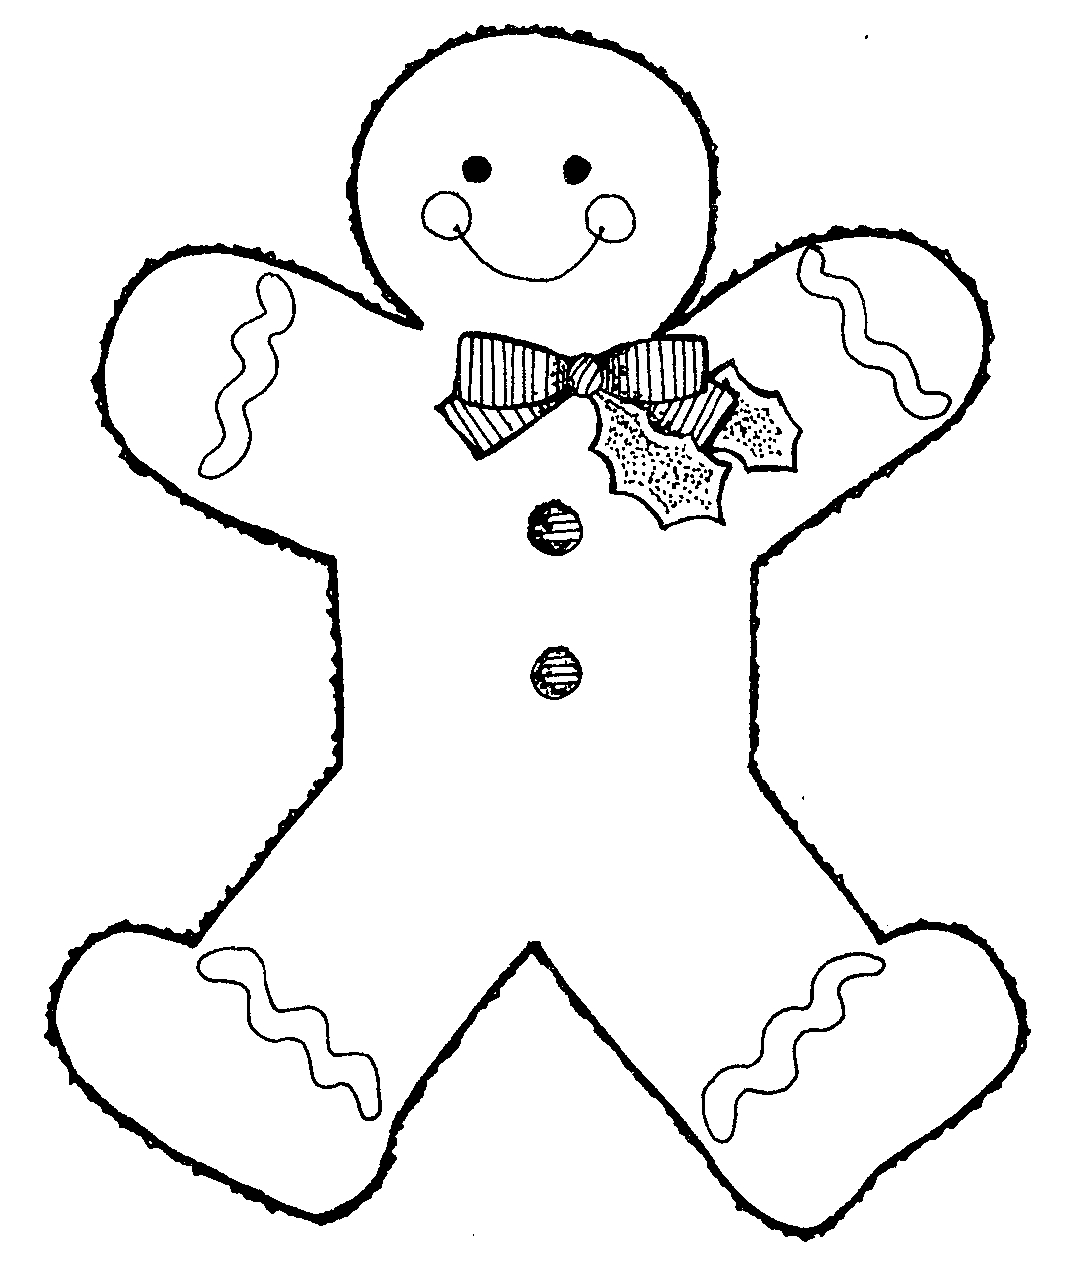 gingerbread boy outline clip art by carrie teaching first gingerbread doodles boy gingerbread outline